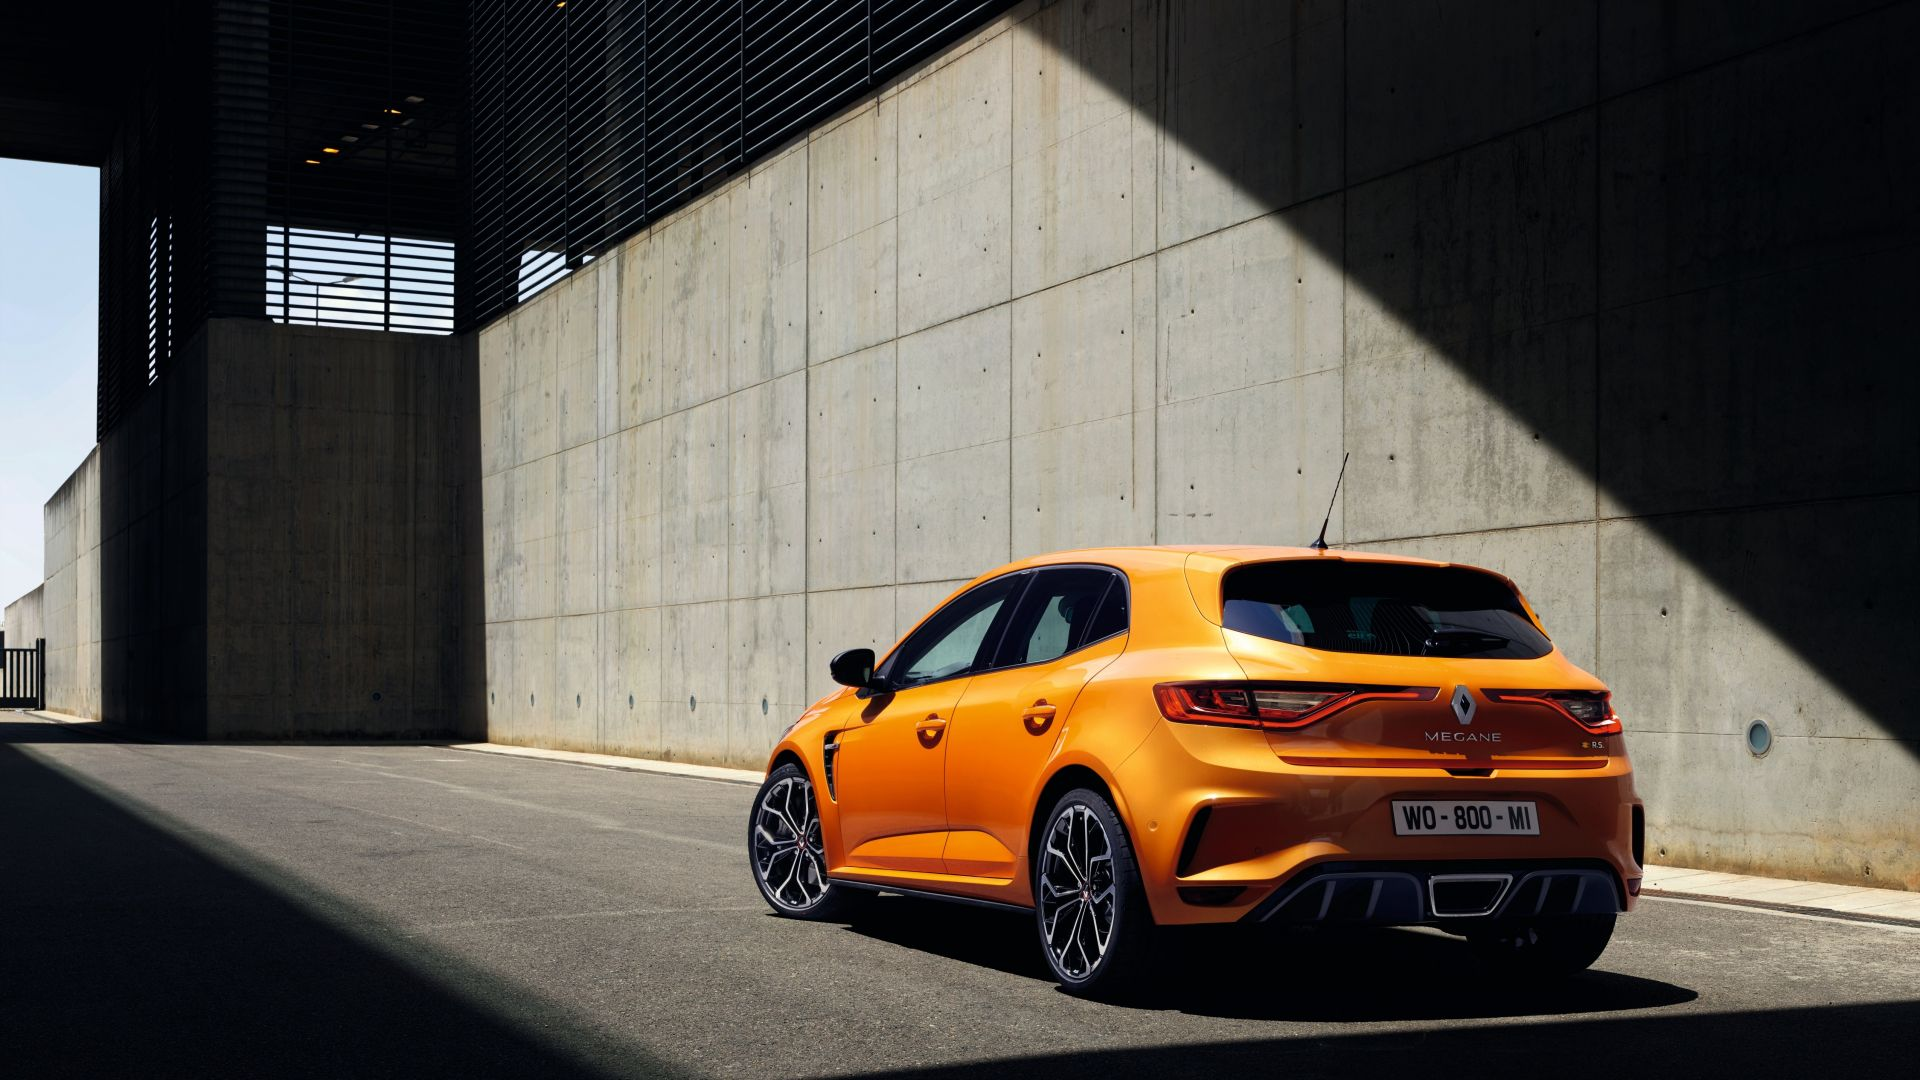 Renault Megane RS, 2018 Cars, 5k (horizontal)